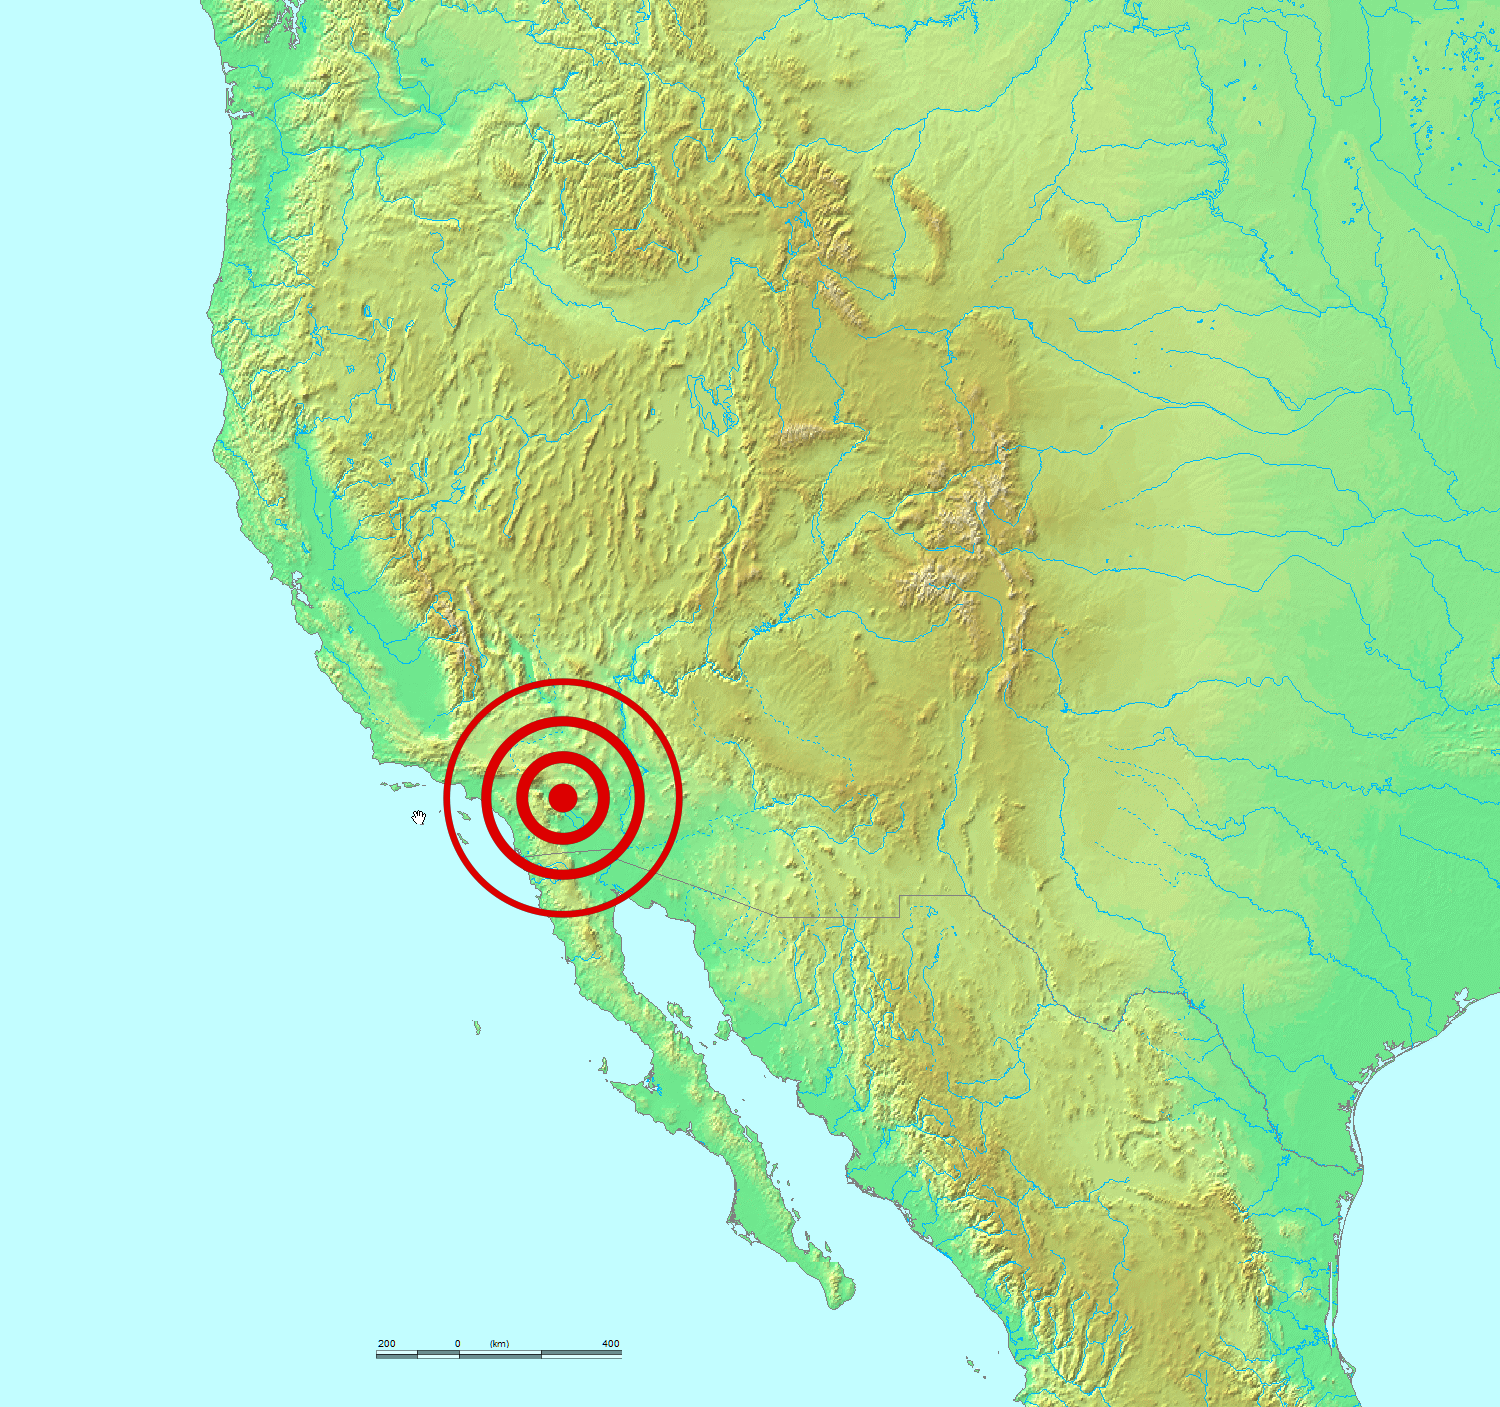 Image 2017 pawnee earthquake locator mapg constructed worlds 2017 pawnee earthquake locator mapg gumiabroncs Image collections